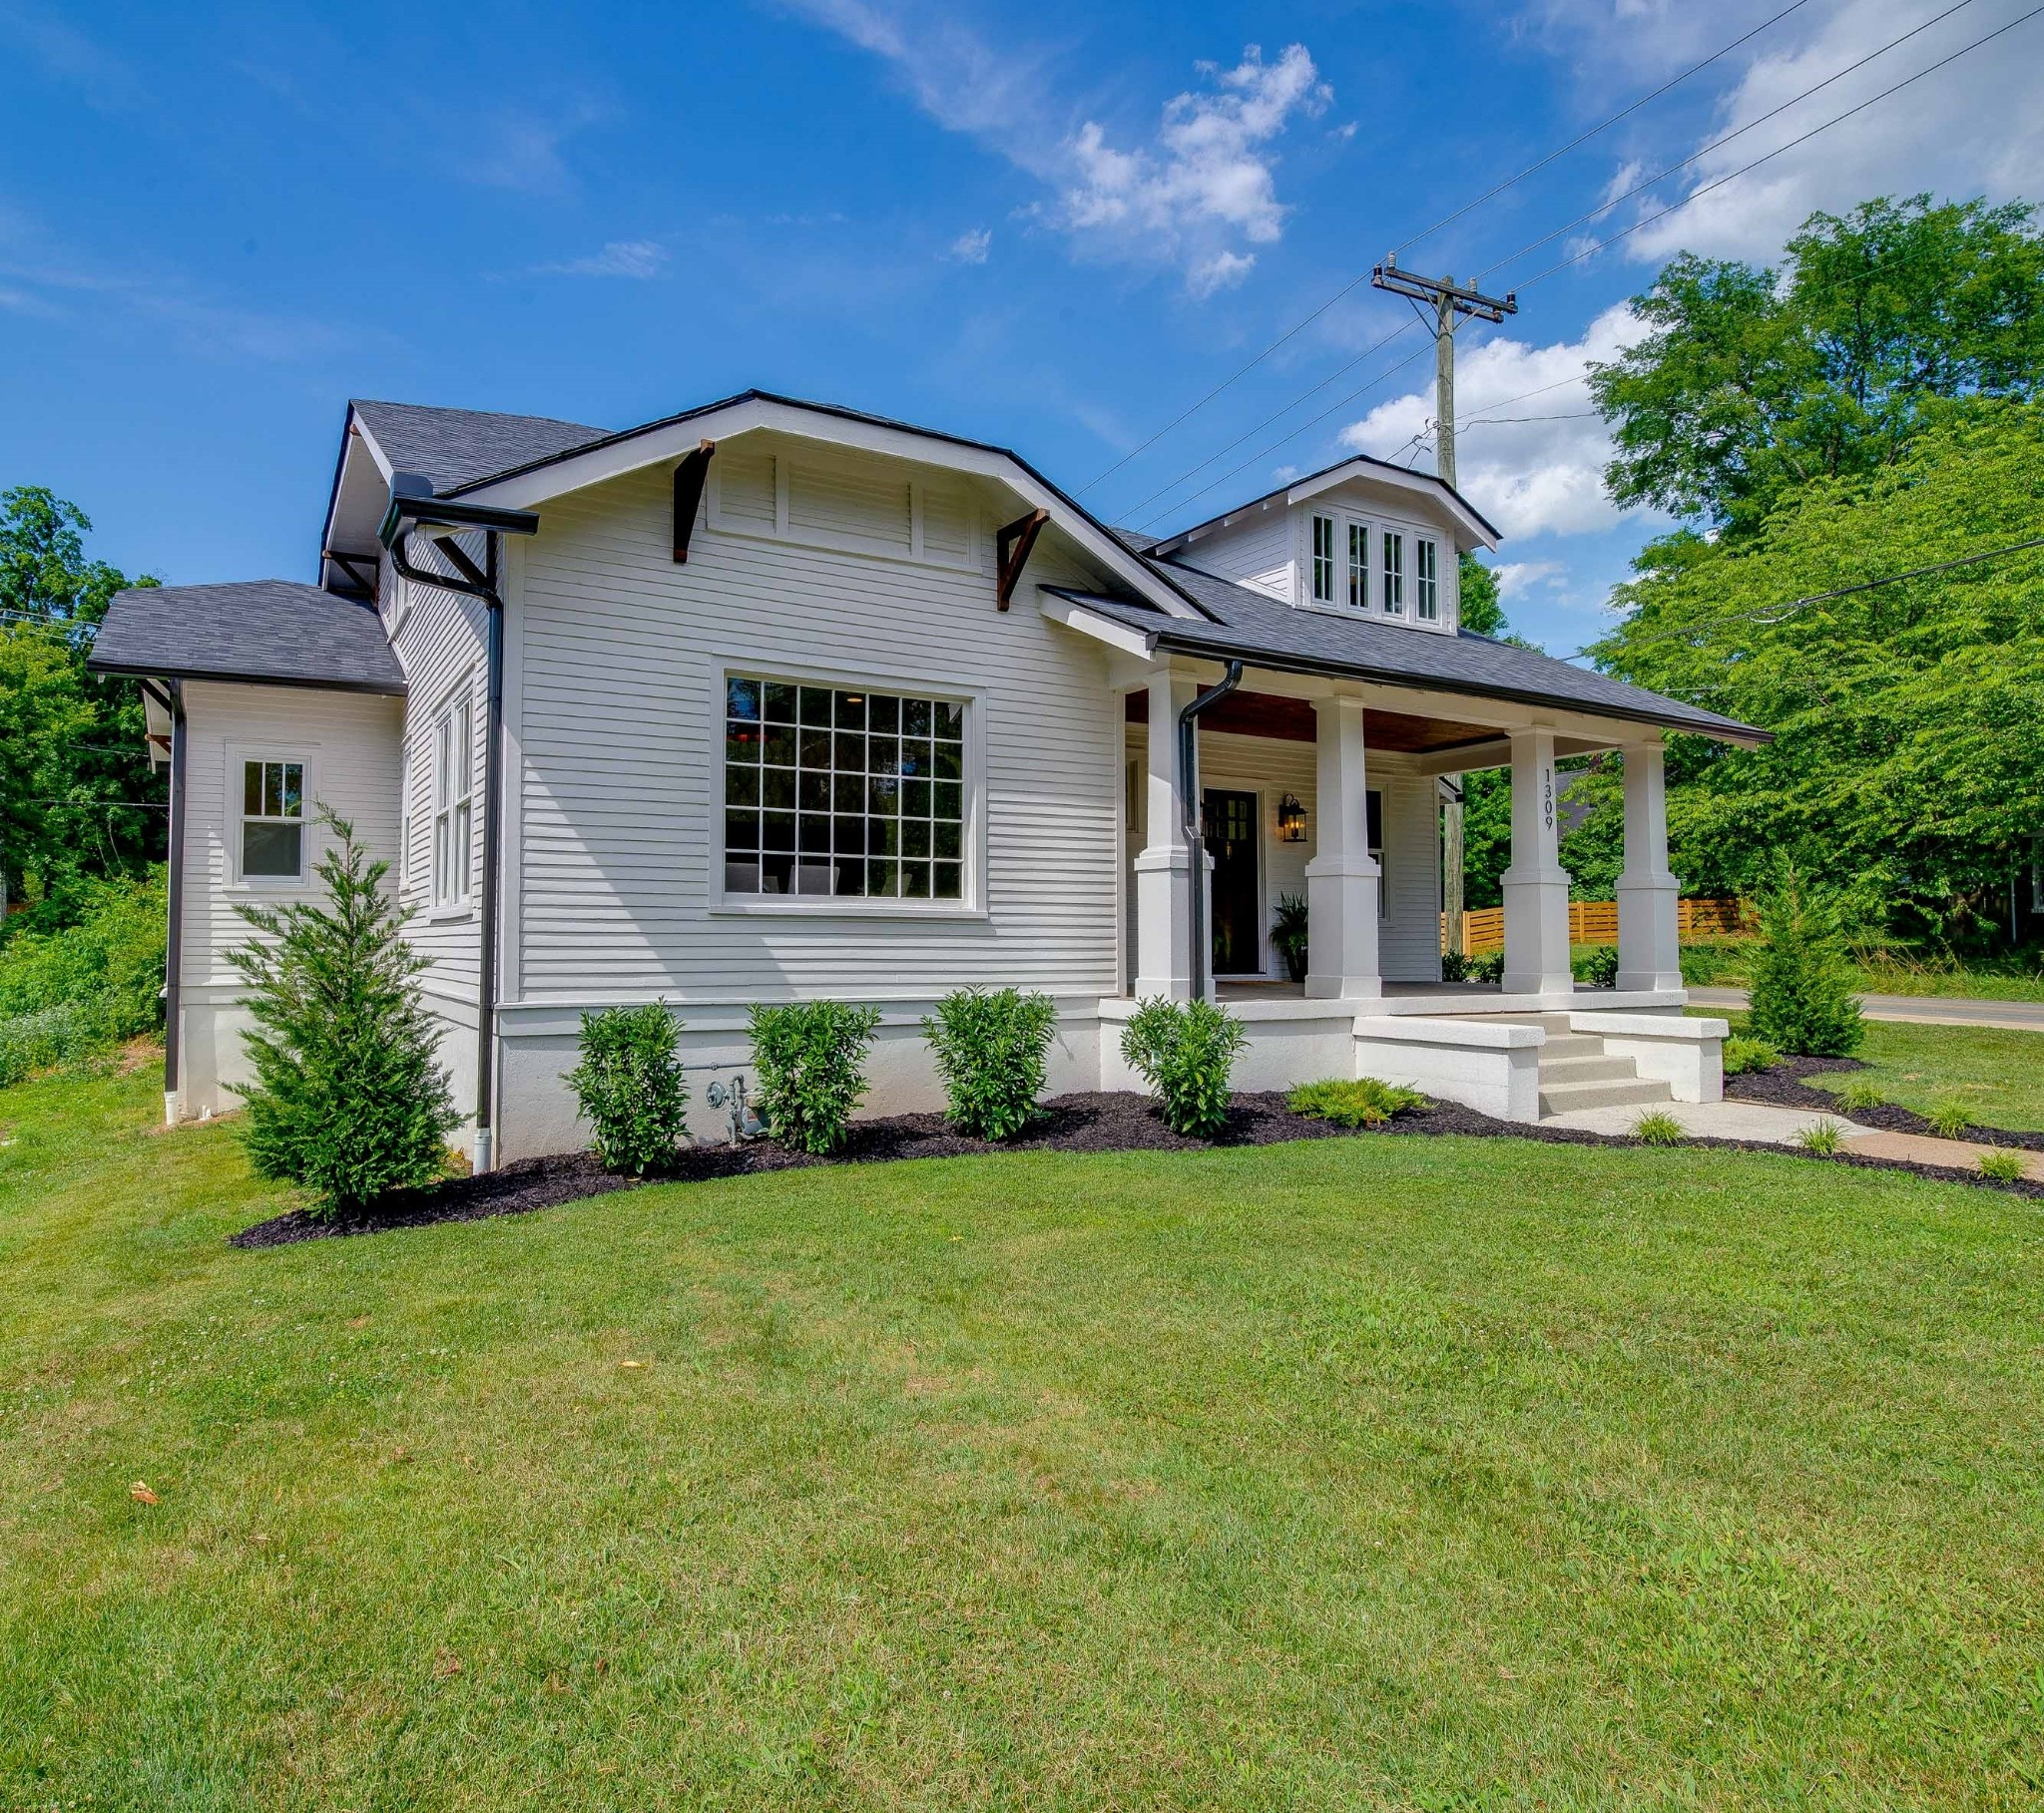 1309 Edgewood Pl Property Photo - Nashville, TN real estate listing